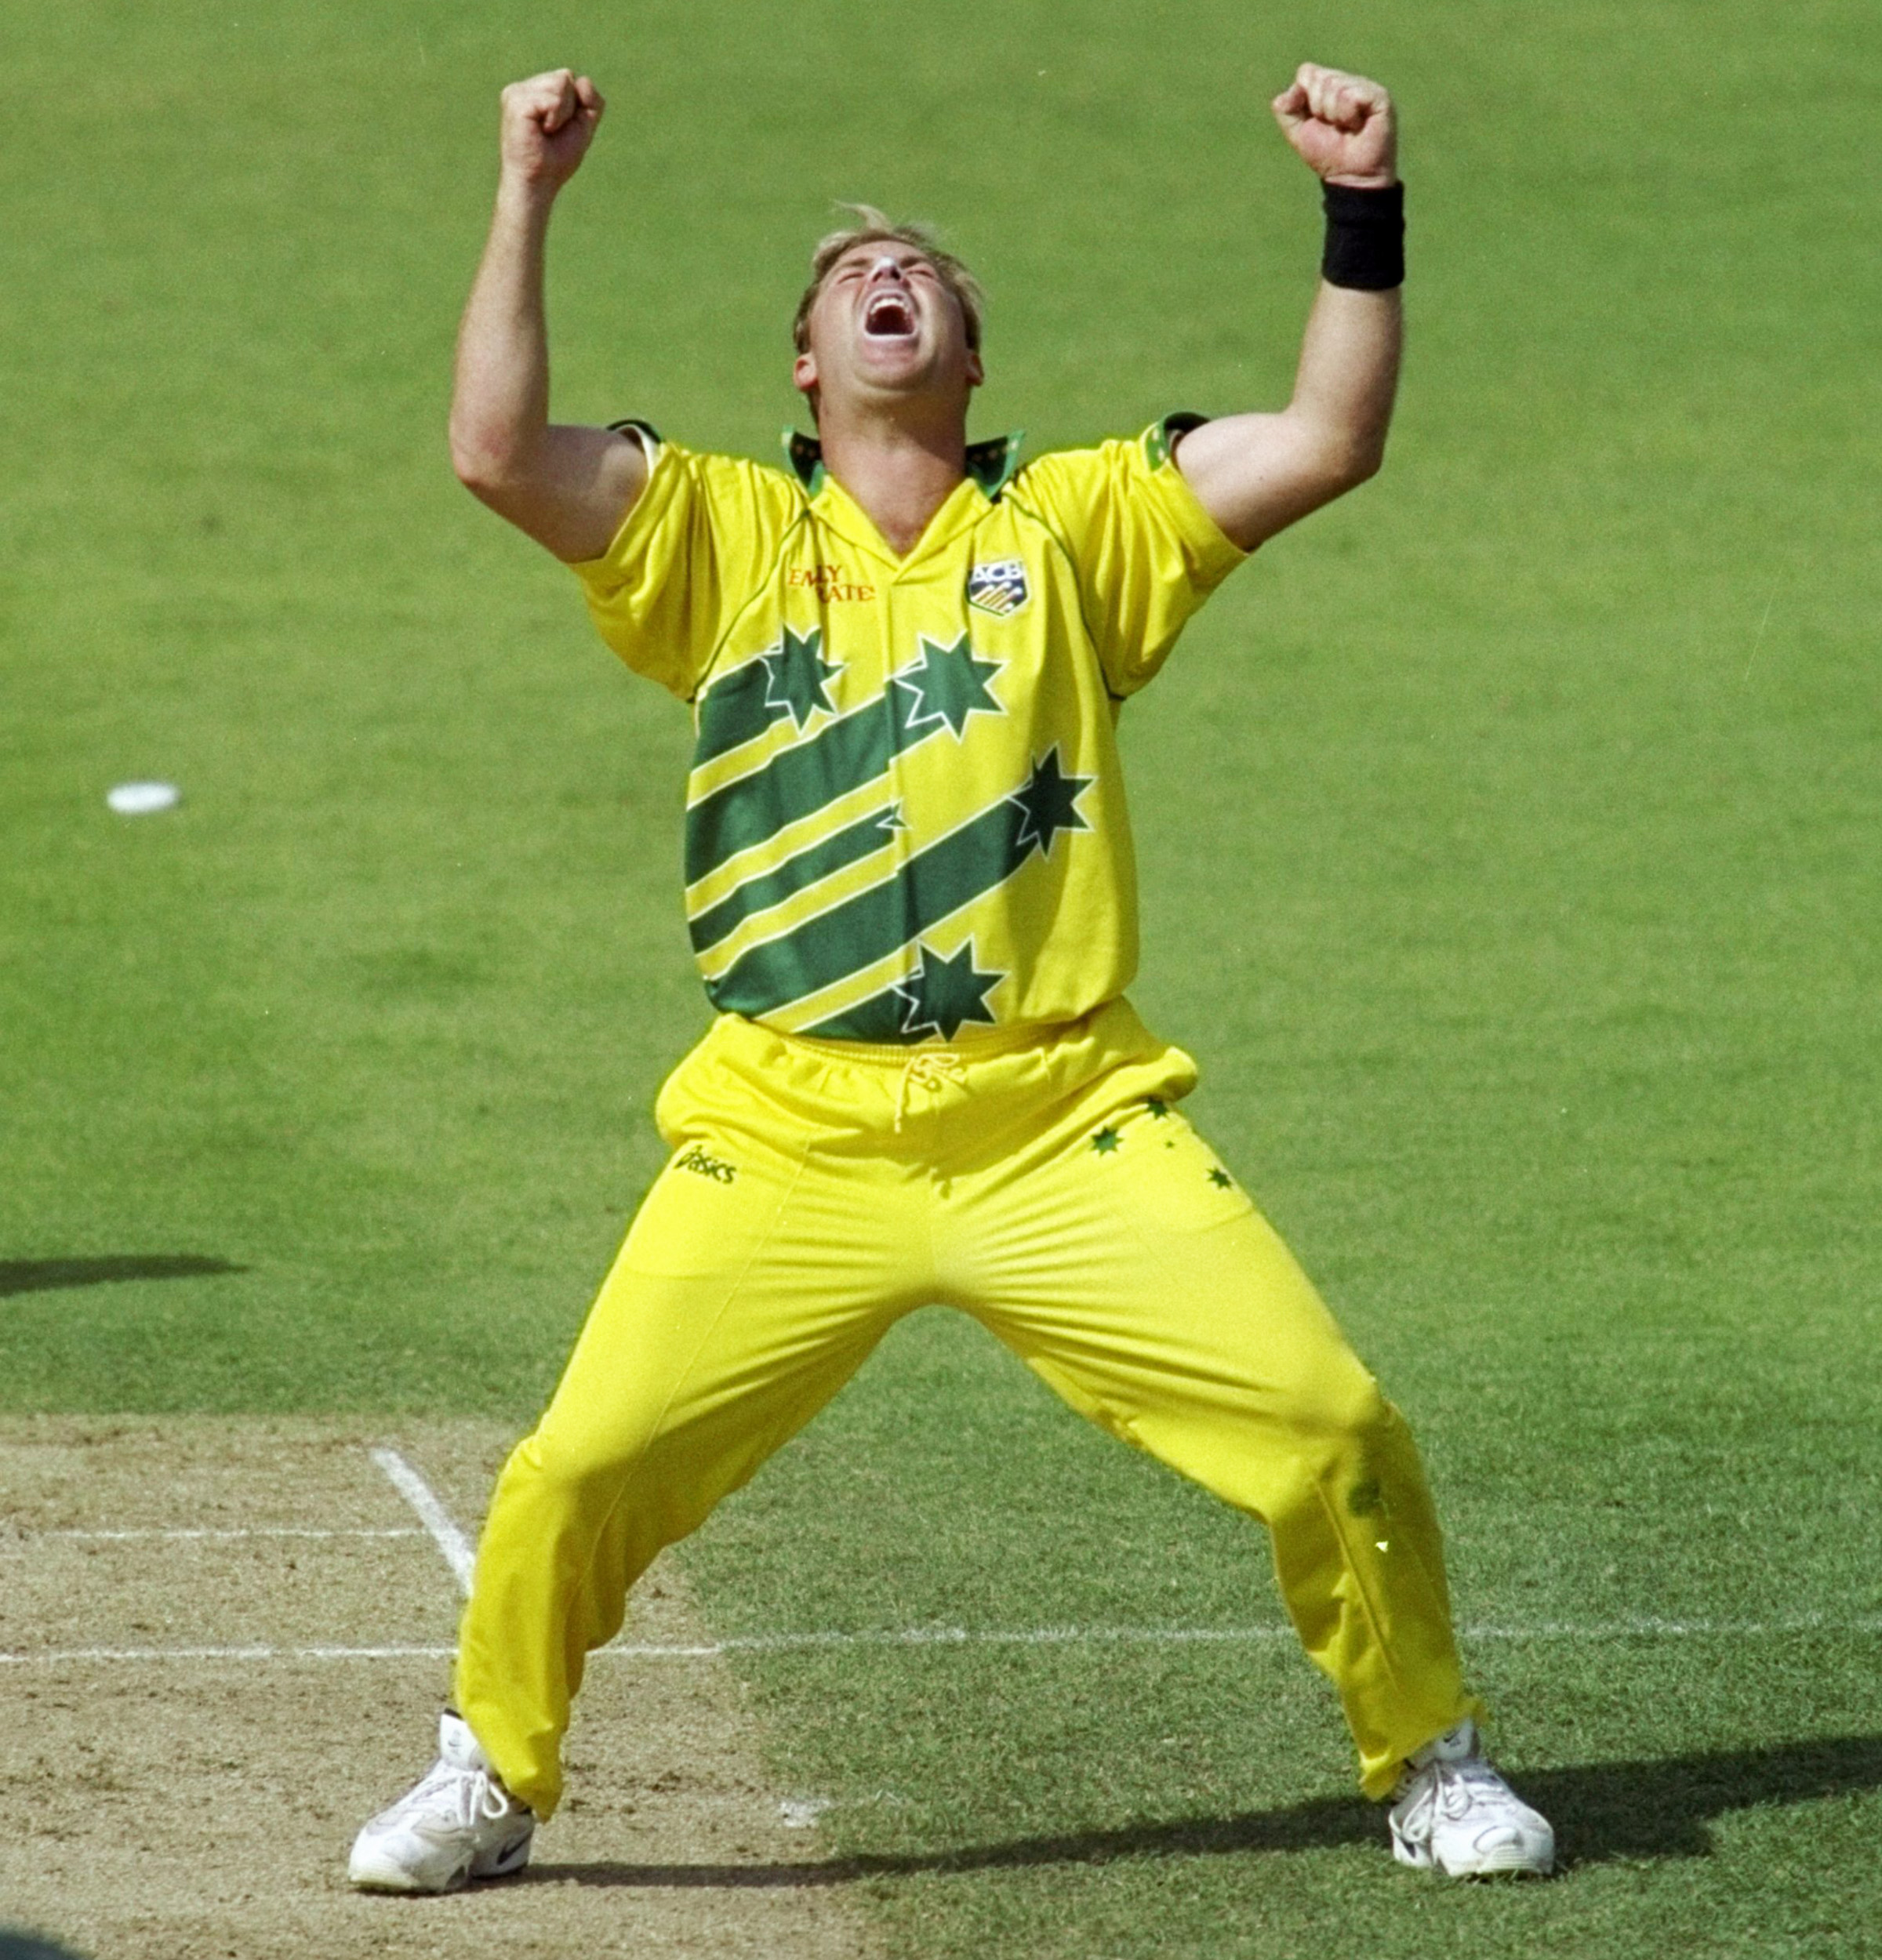 Warne celebrates during his famous spell against South Africa in 1999 // Getty